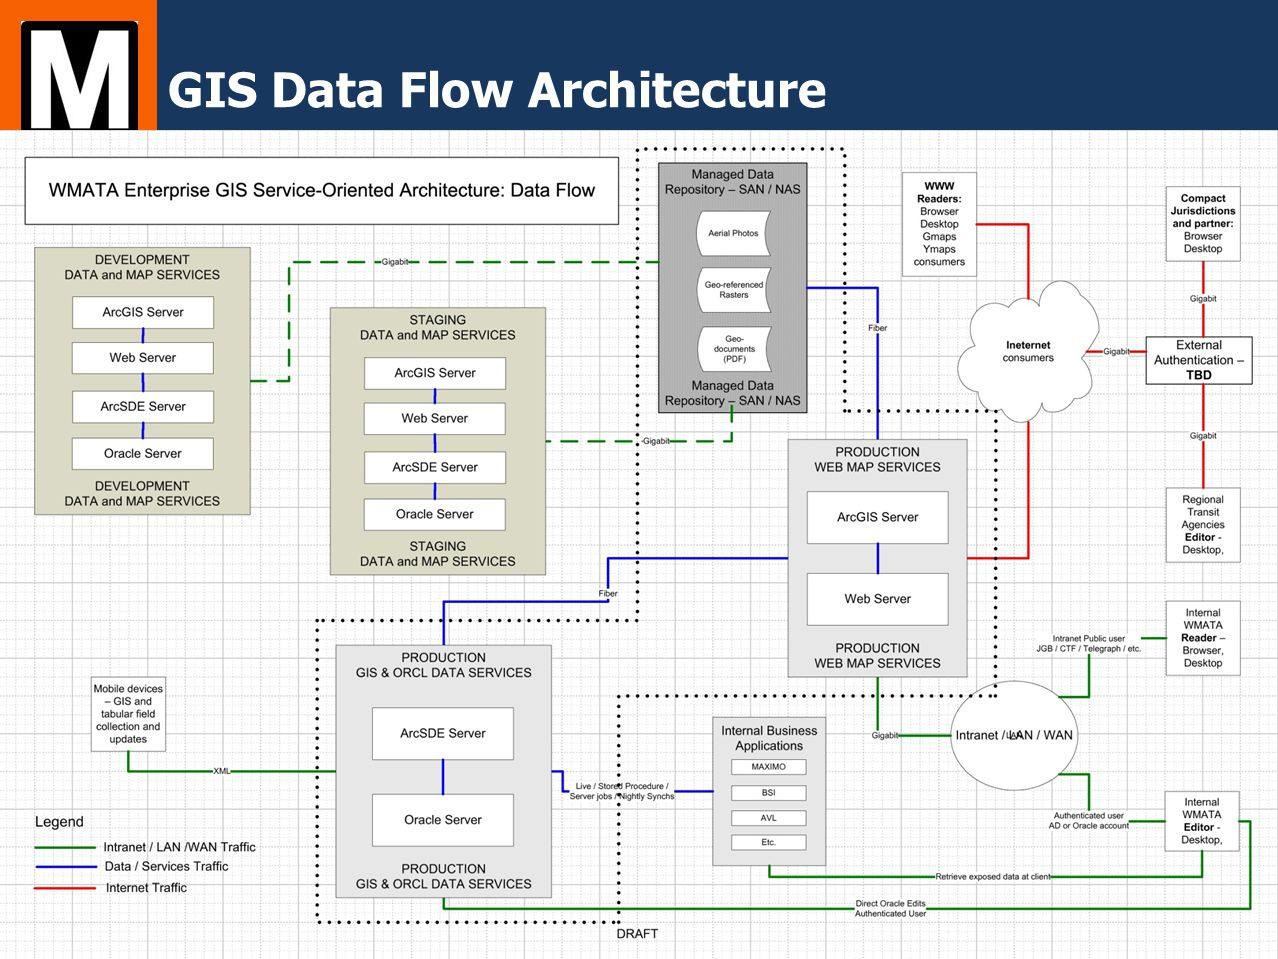 GIS Data Flow Architecture